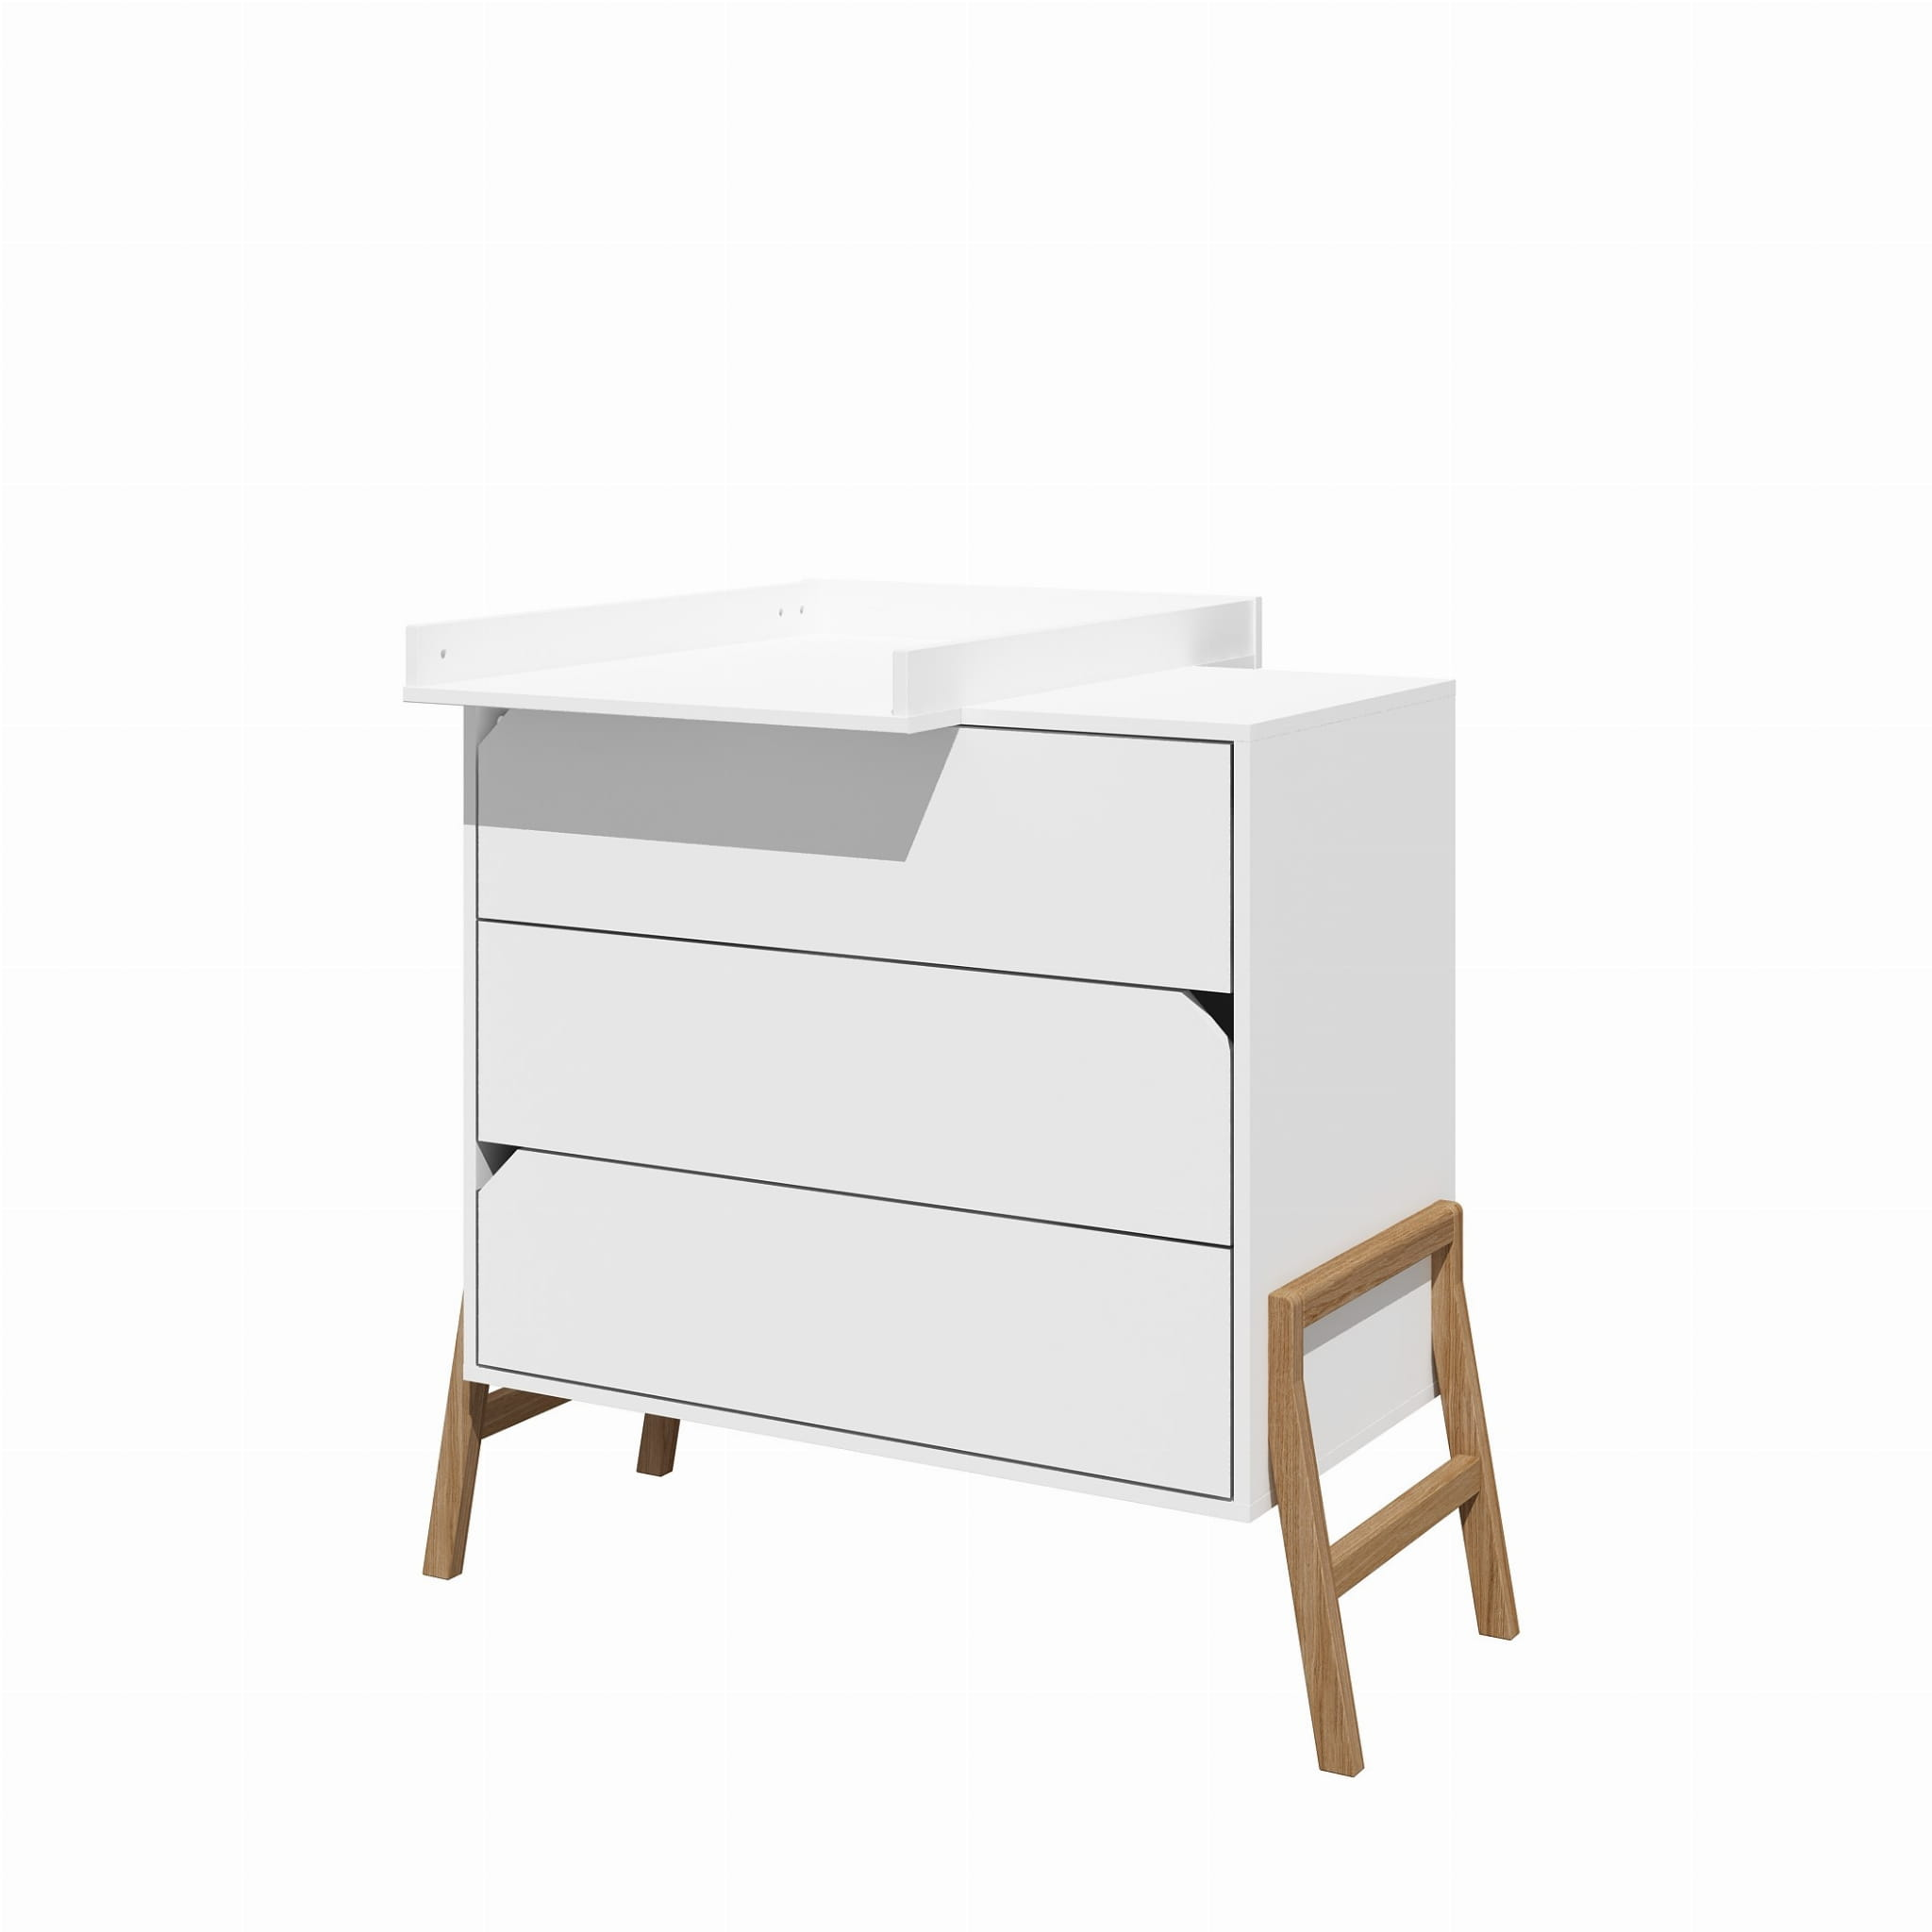 Lotta_chest_of_drawers_with_changing_table_05.jpg